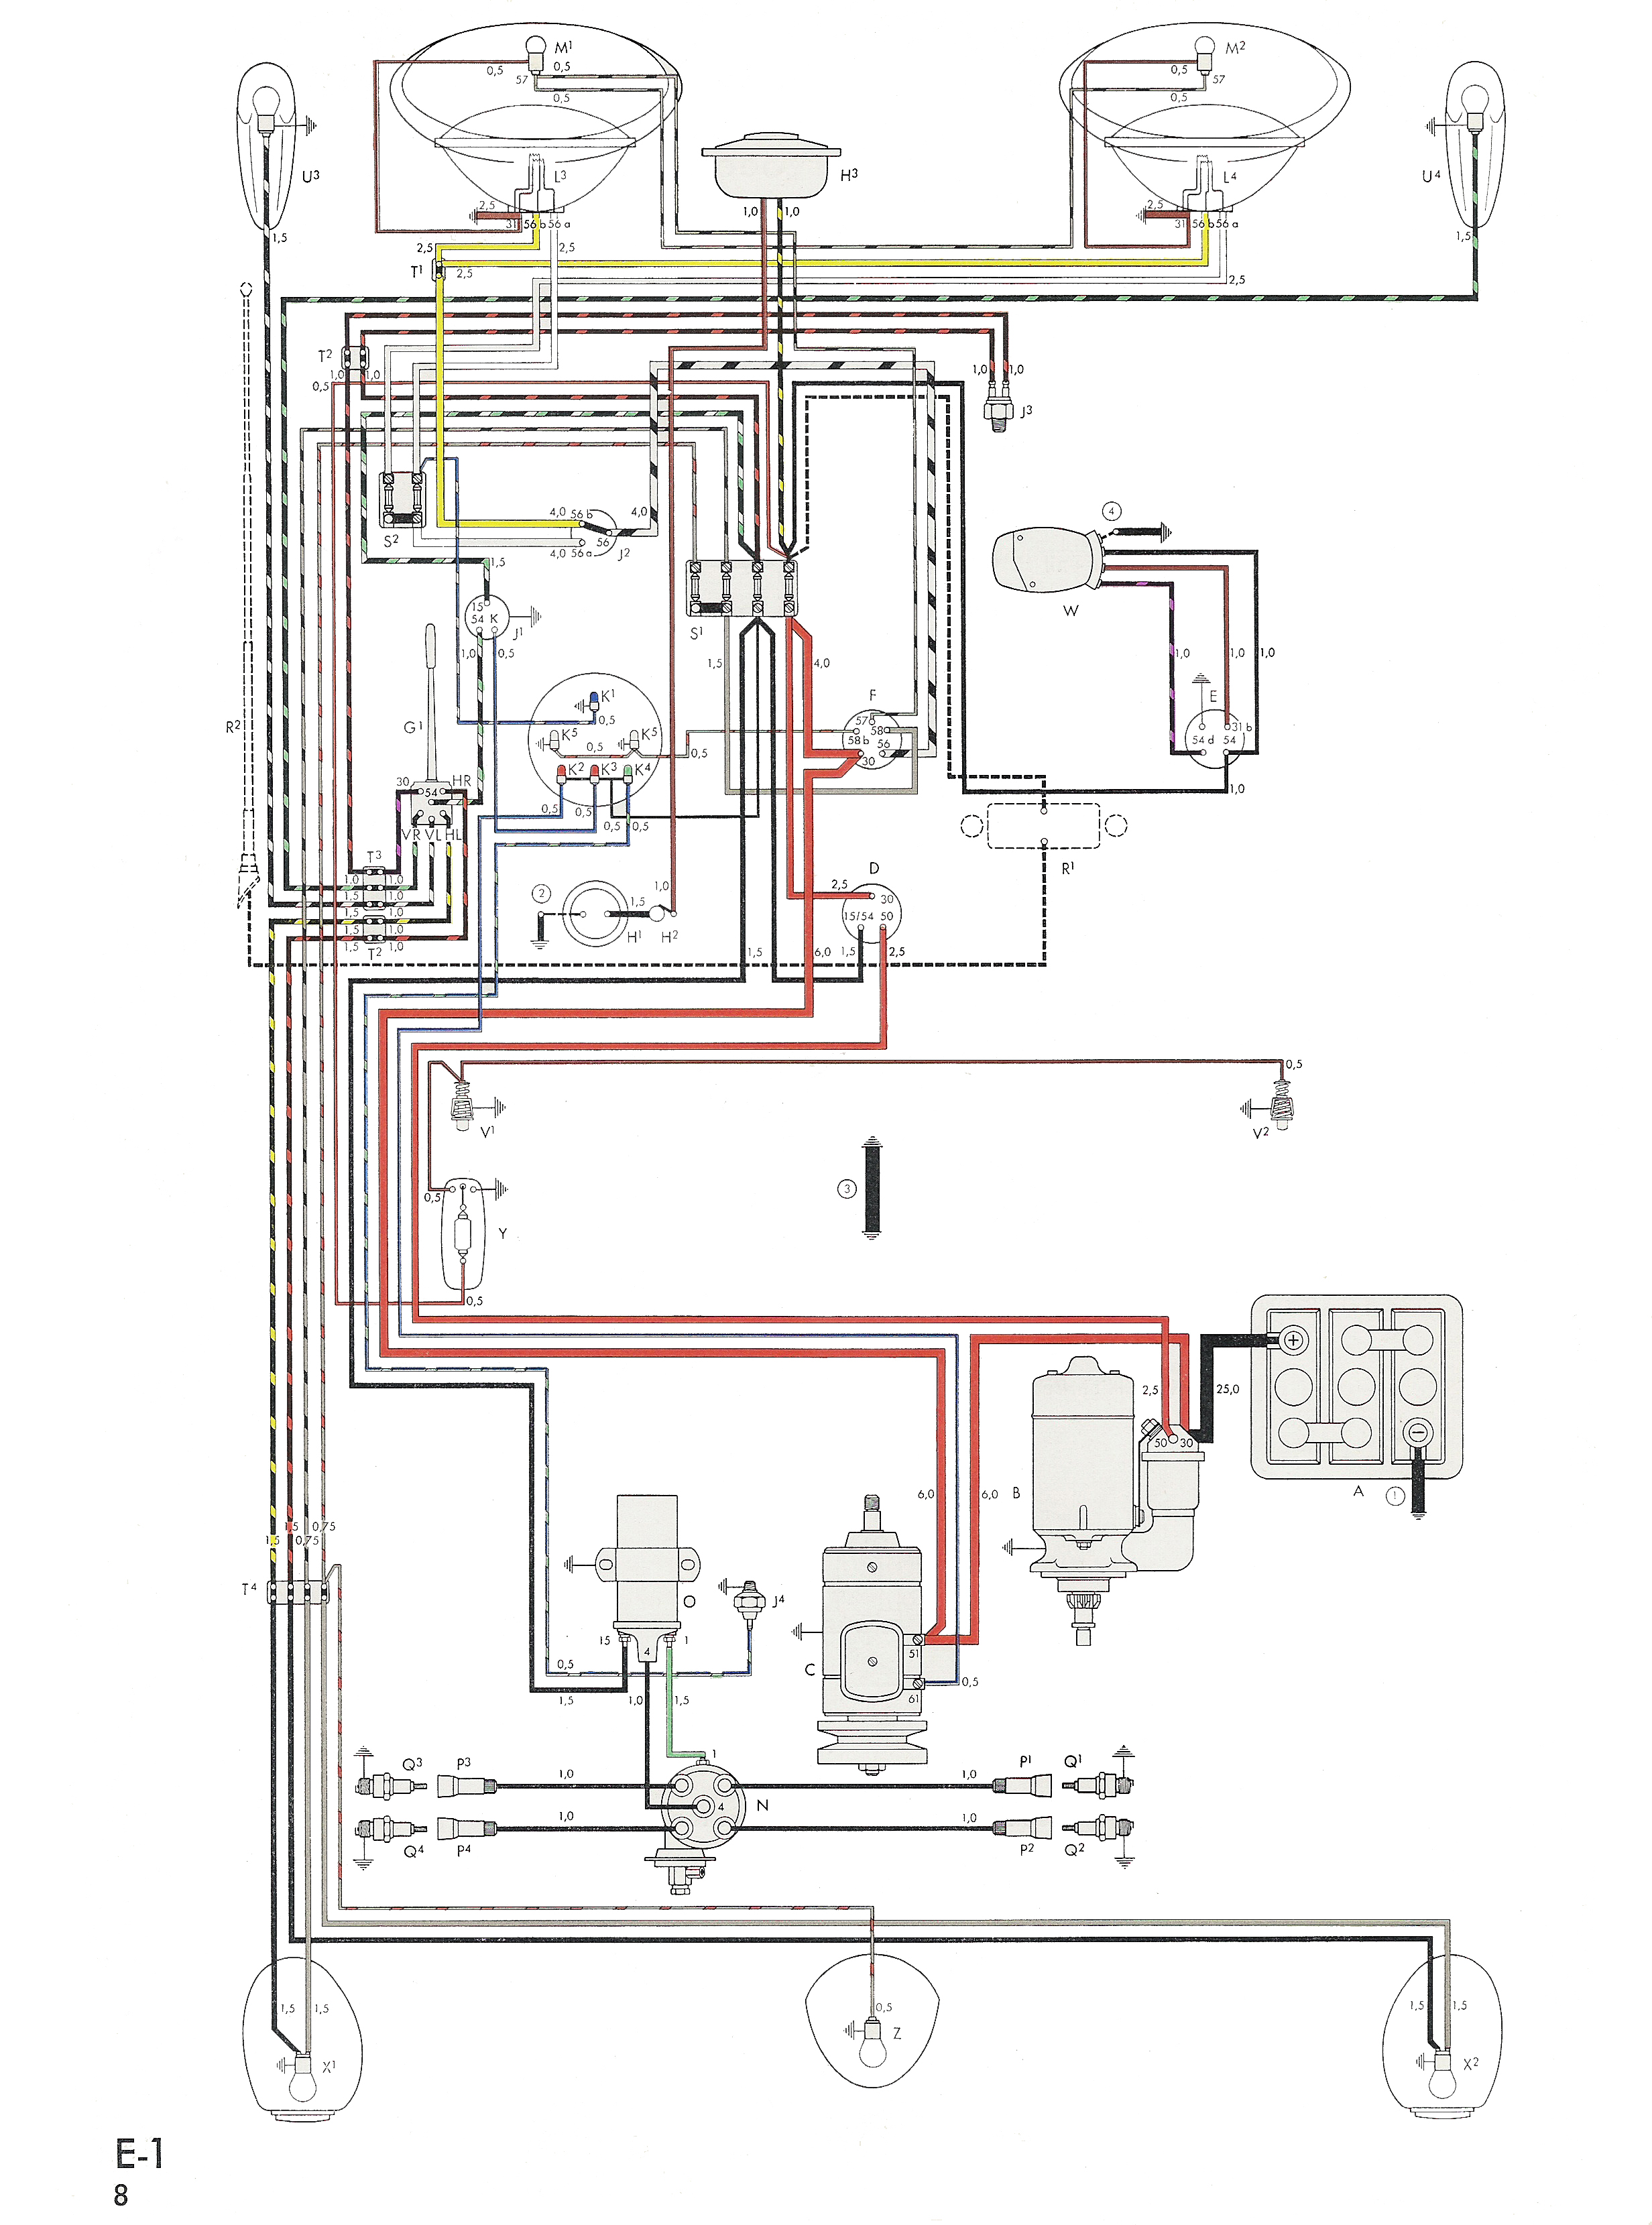 1968 vw beetle autostick wiring diagram house fly anatomy 70 bug vacuum -